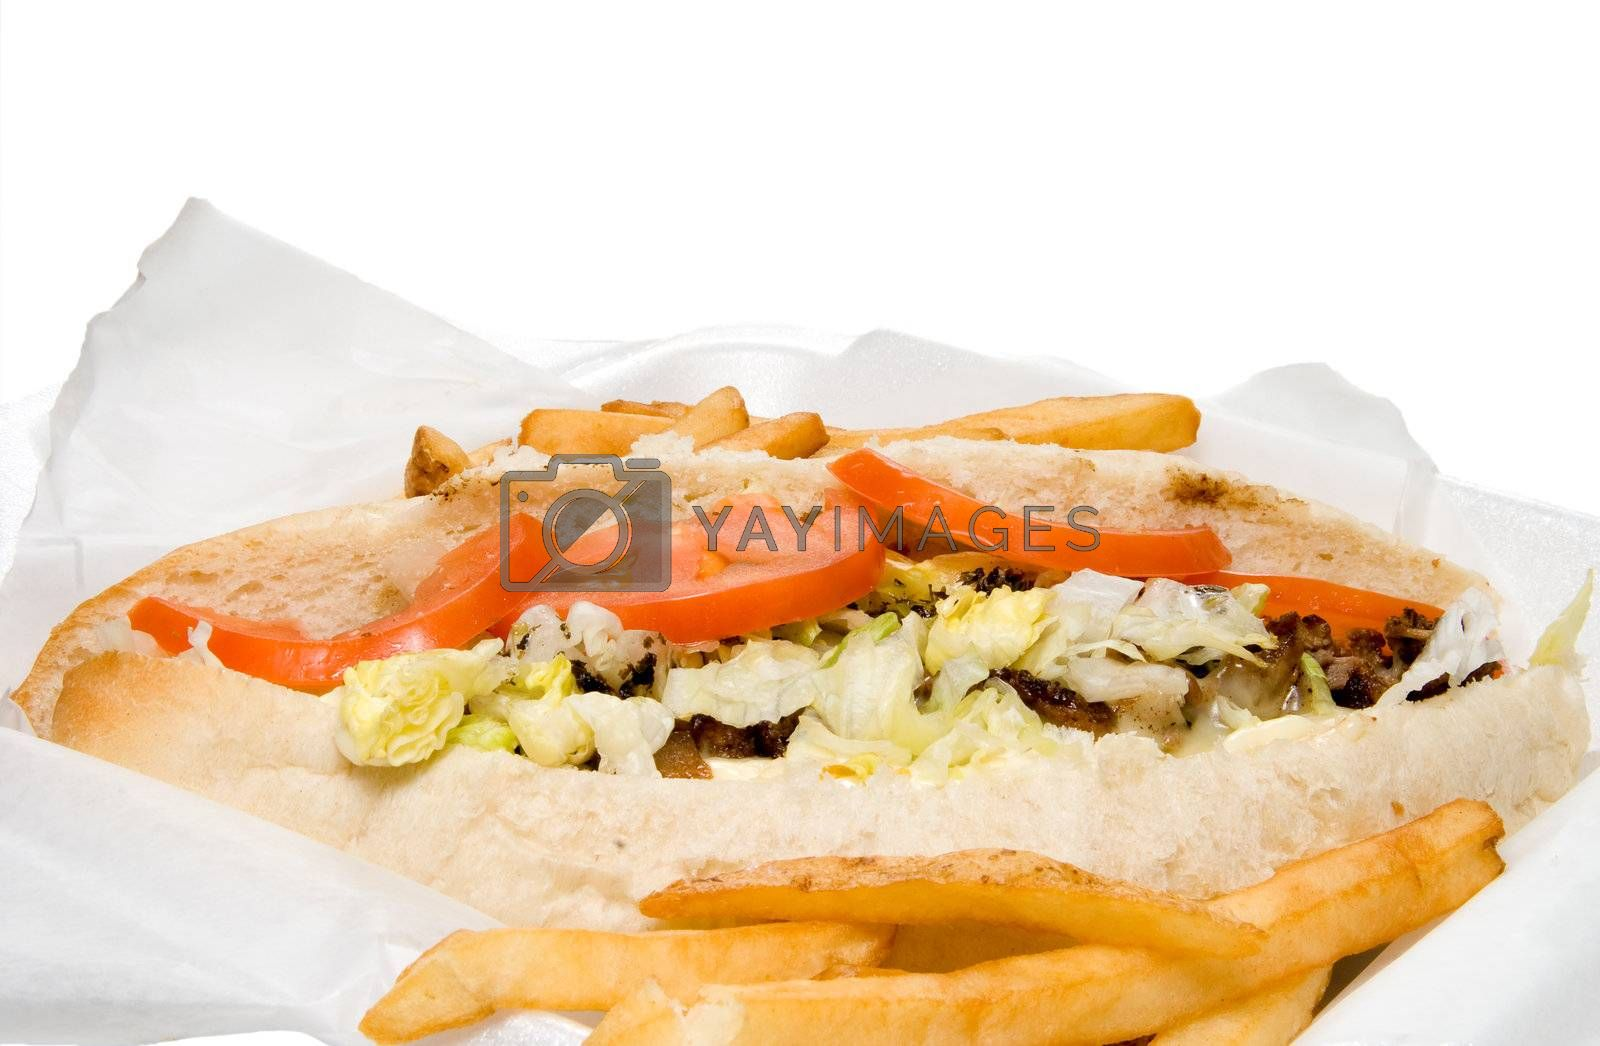 A Philly Cheesesteak and an oreder of French Fries